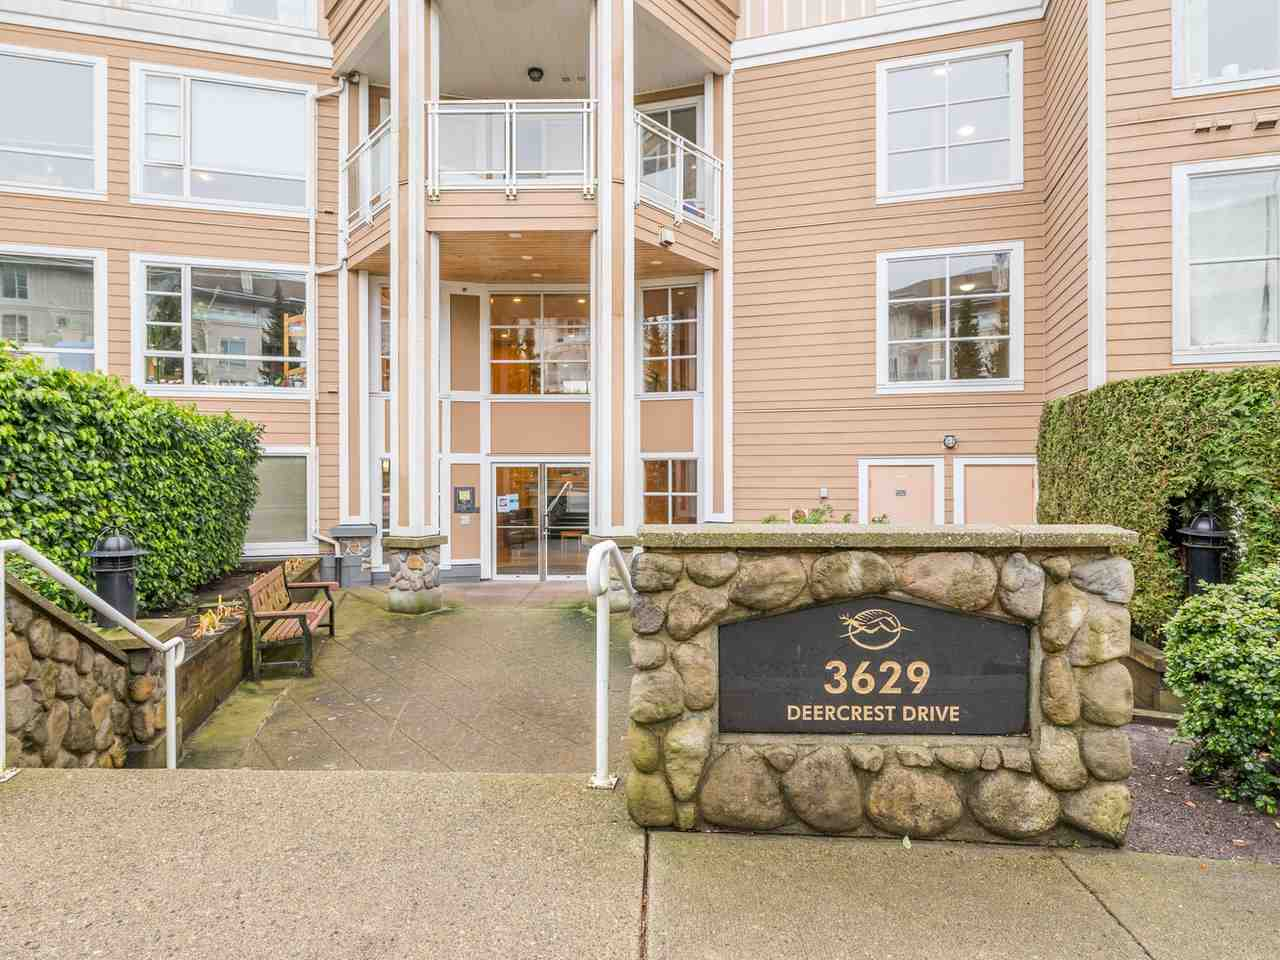 412 3629 DEERCREST DRIVE - Roche Point Apartment/Condo for sale, 1 Bedroom (R2525424) - #2